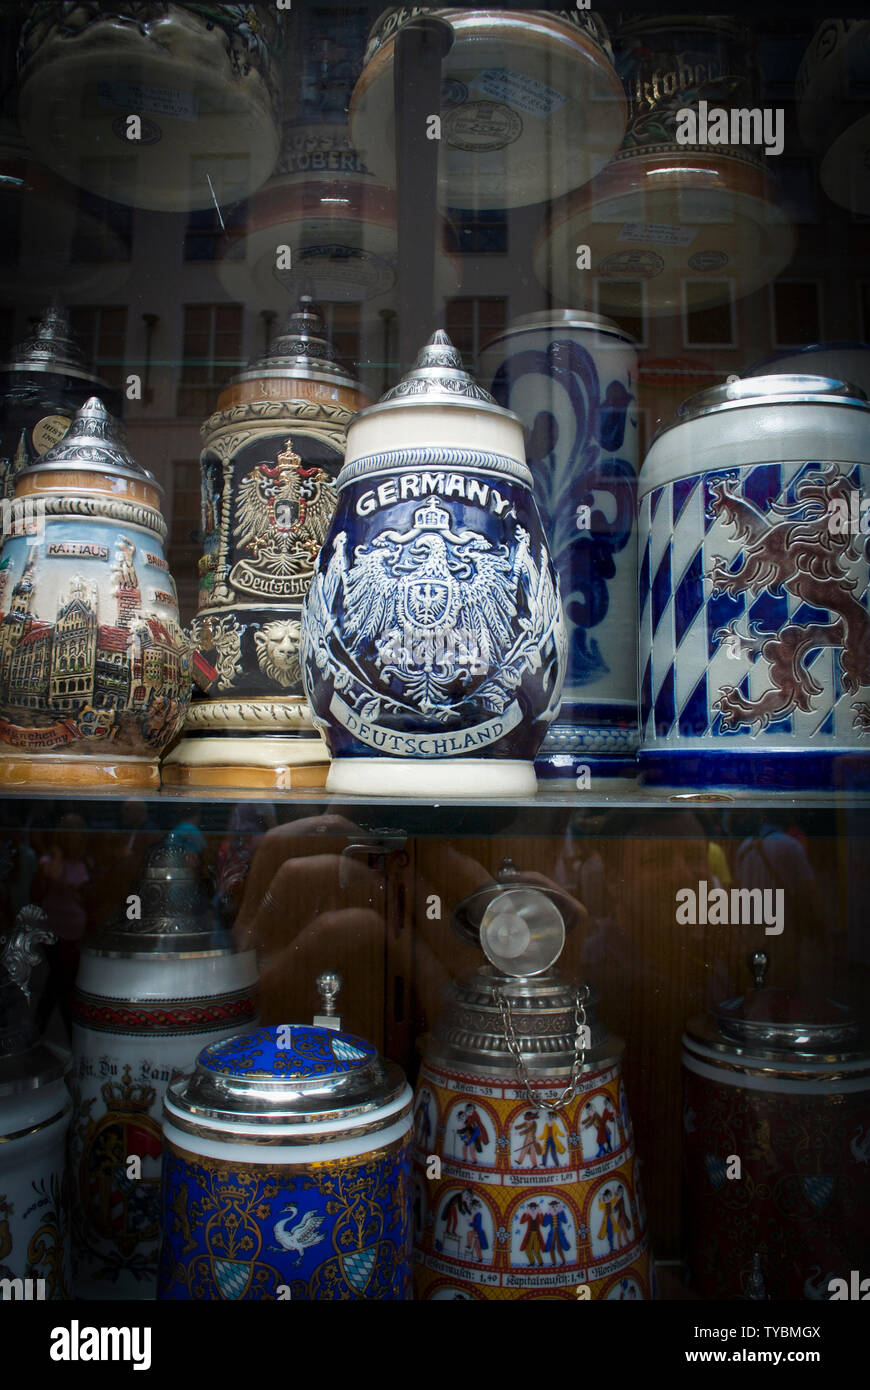 Stoneware Beer Steins on sale in sa shop in Munich, Bavaria, Germany. - Stock Image